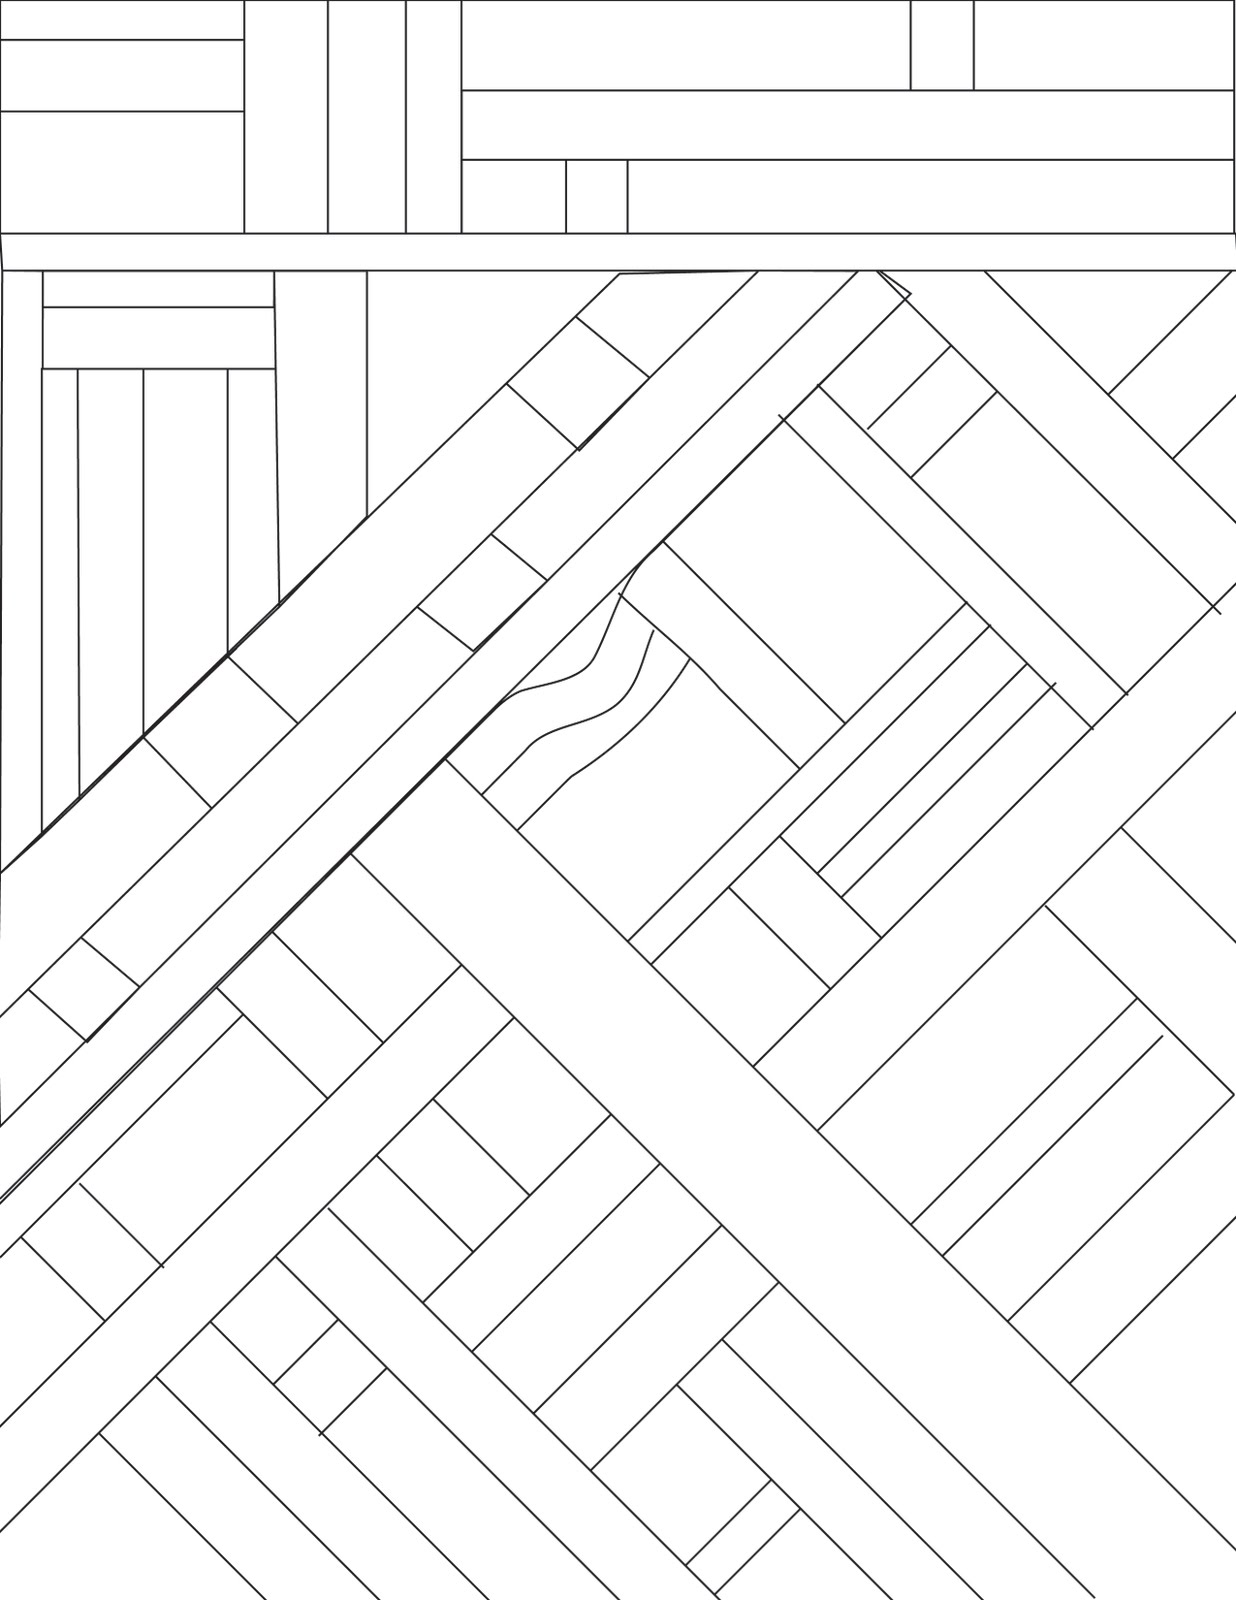 Straight Line Art Images : The gallery for gt straight line patterns